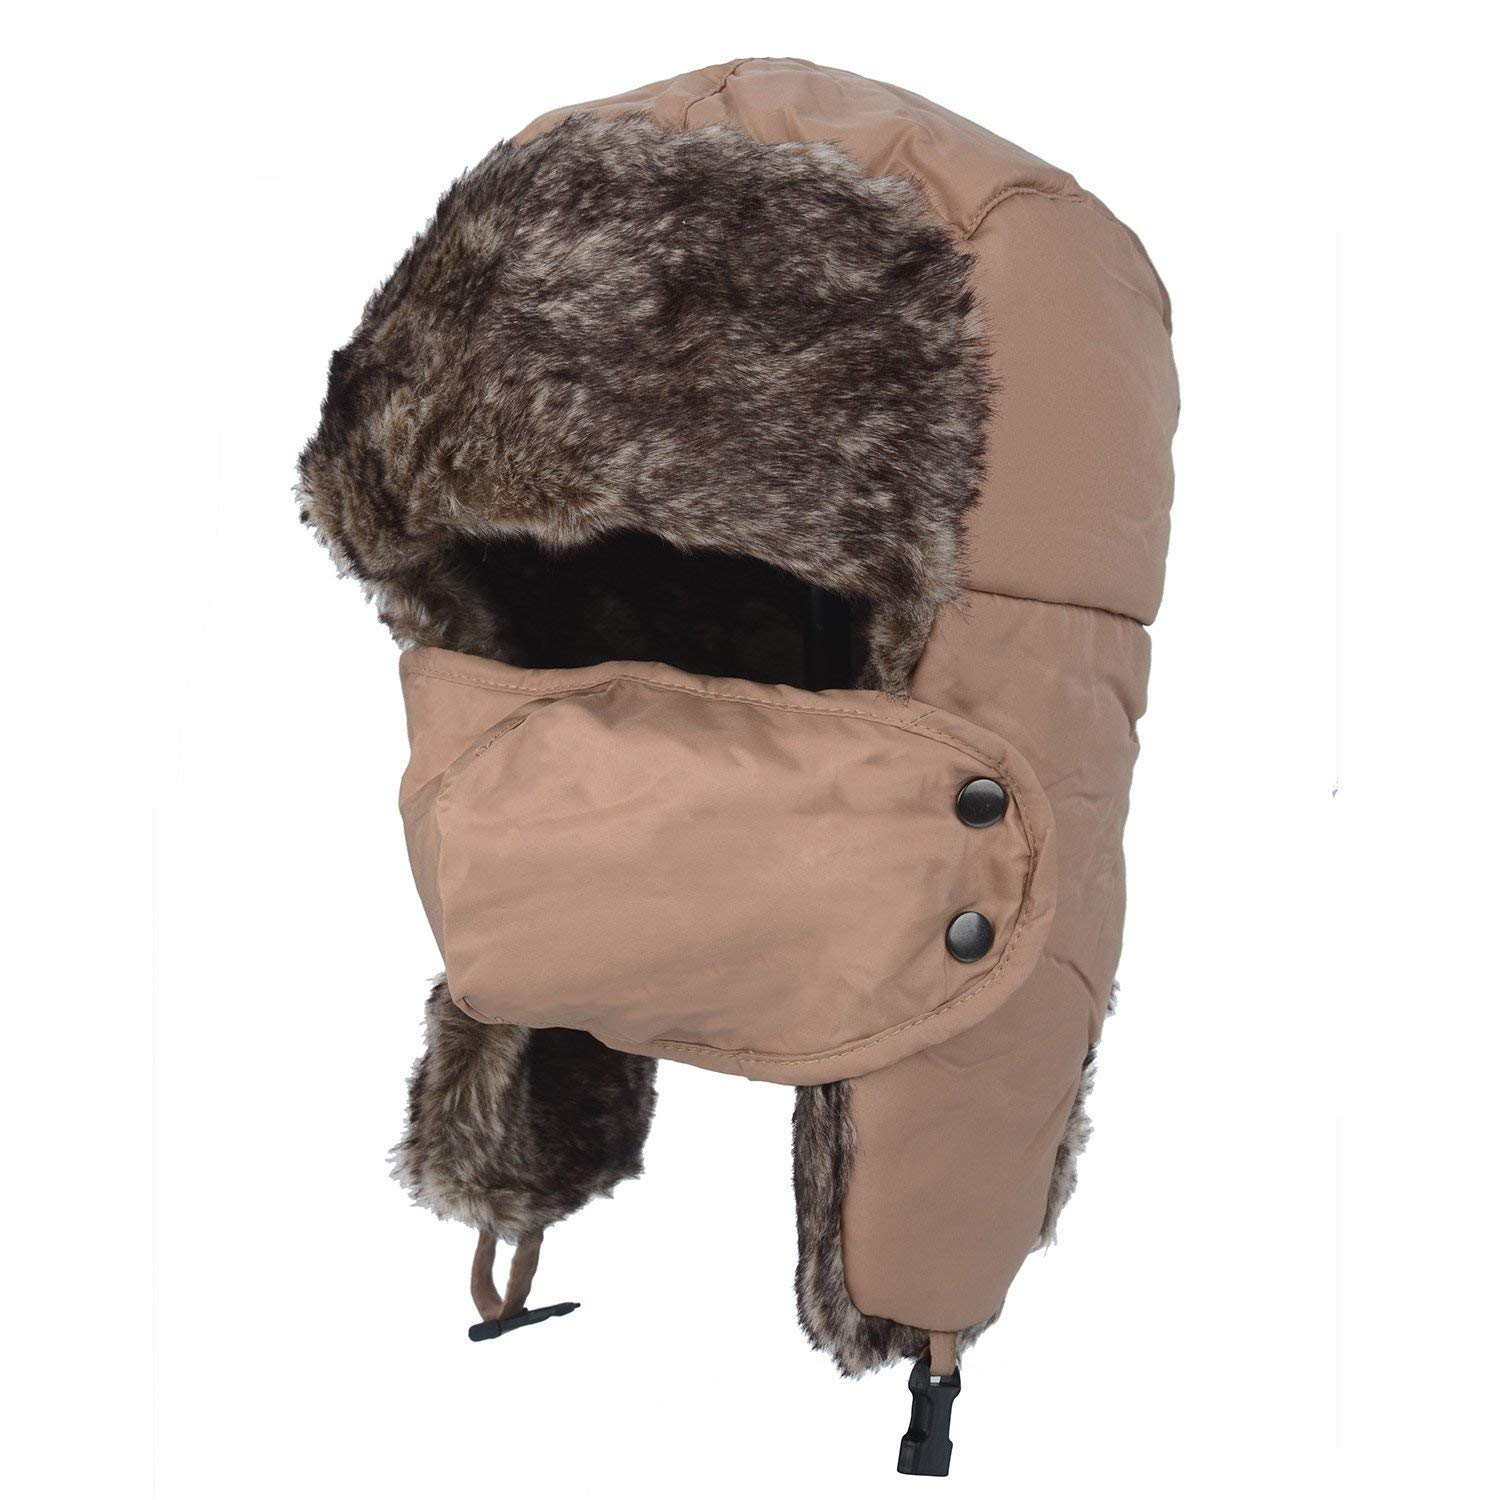 626571ec38979 Get Quotations · F Flammi Winter Trooper Trapper Hat Ushanka Hat Russian  Style Hunting Hat with Earflaps